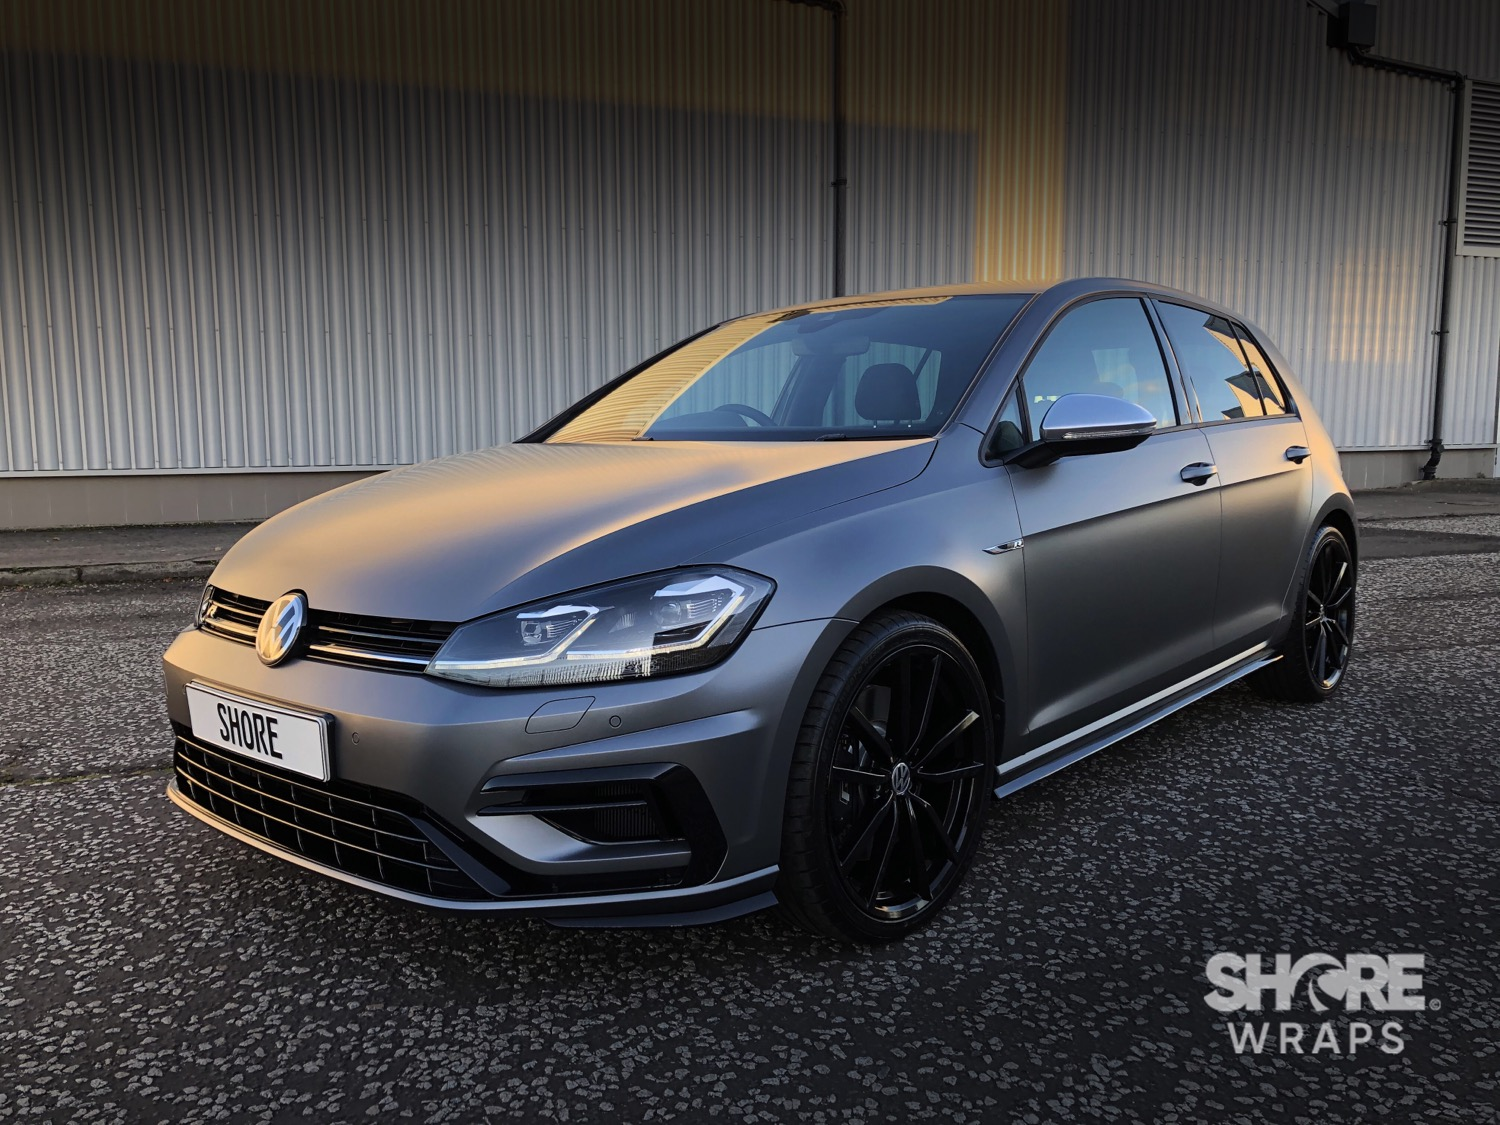 Golf R Satin Grey Wrap